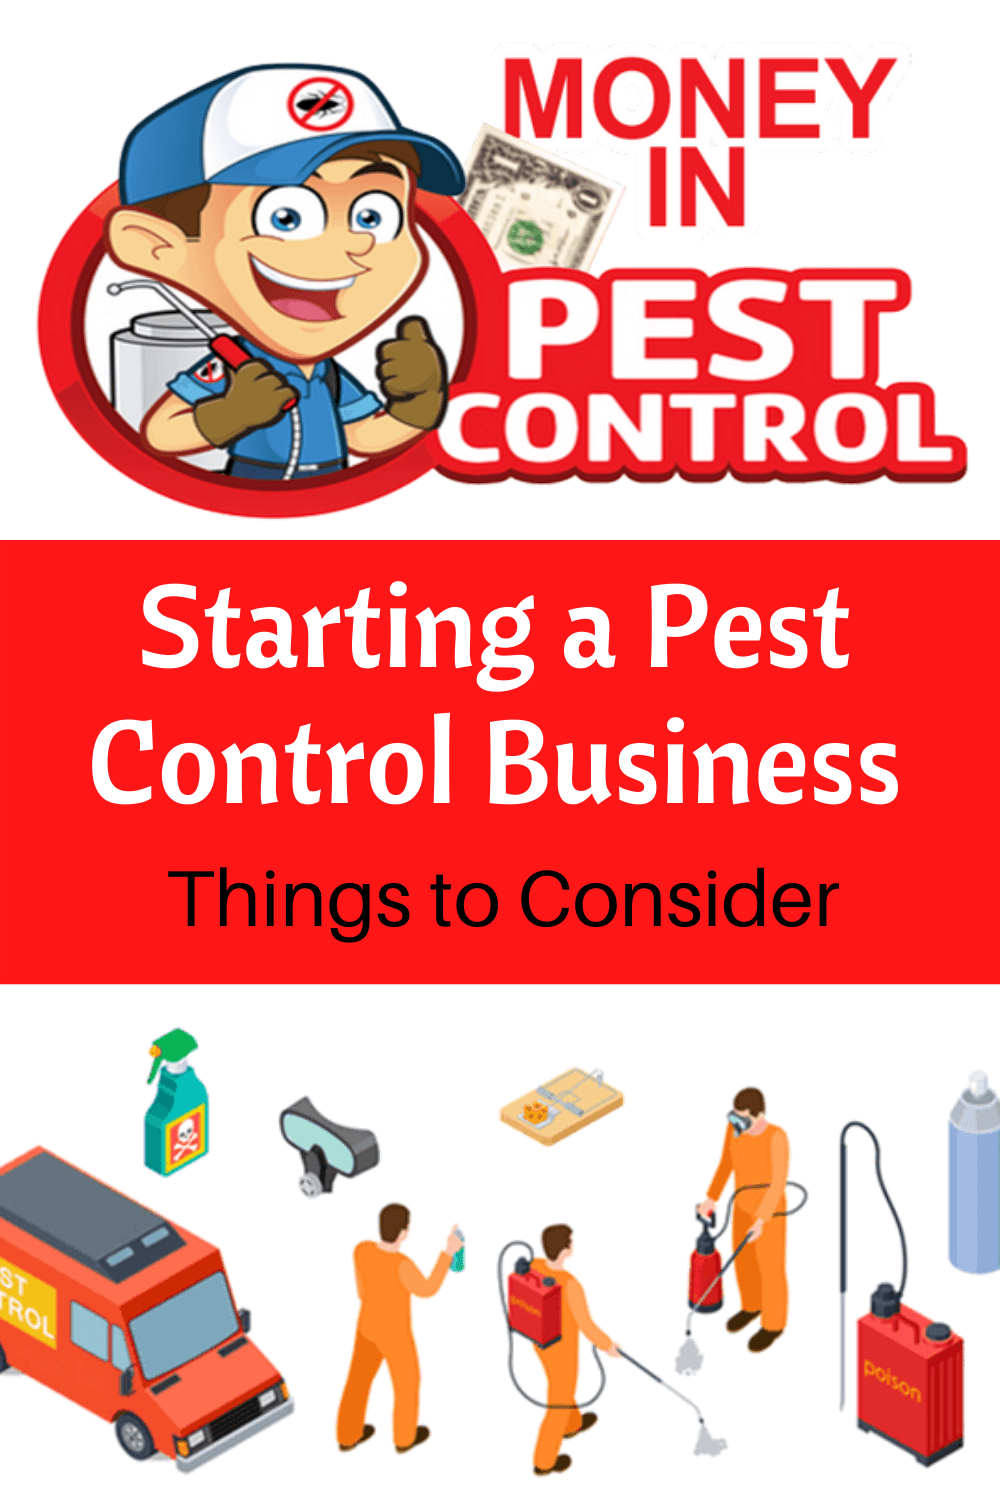 Starting a pest control business - things to consider